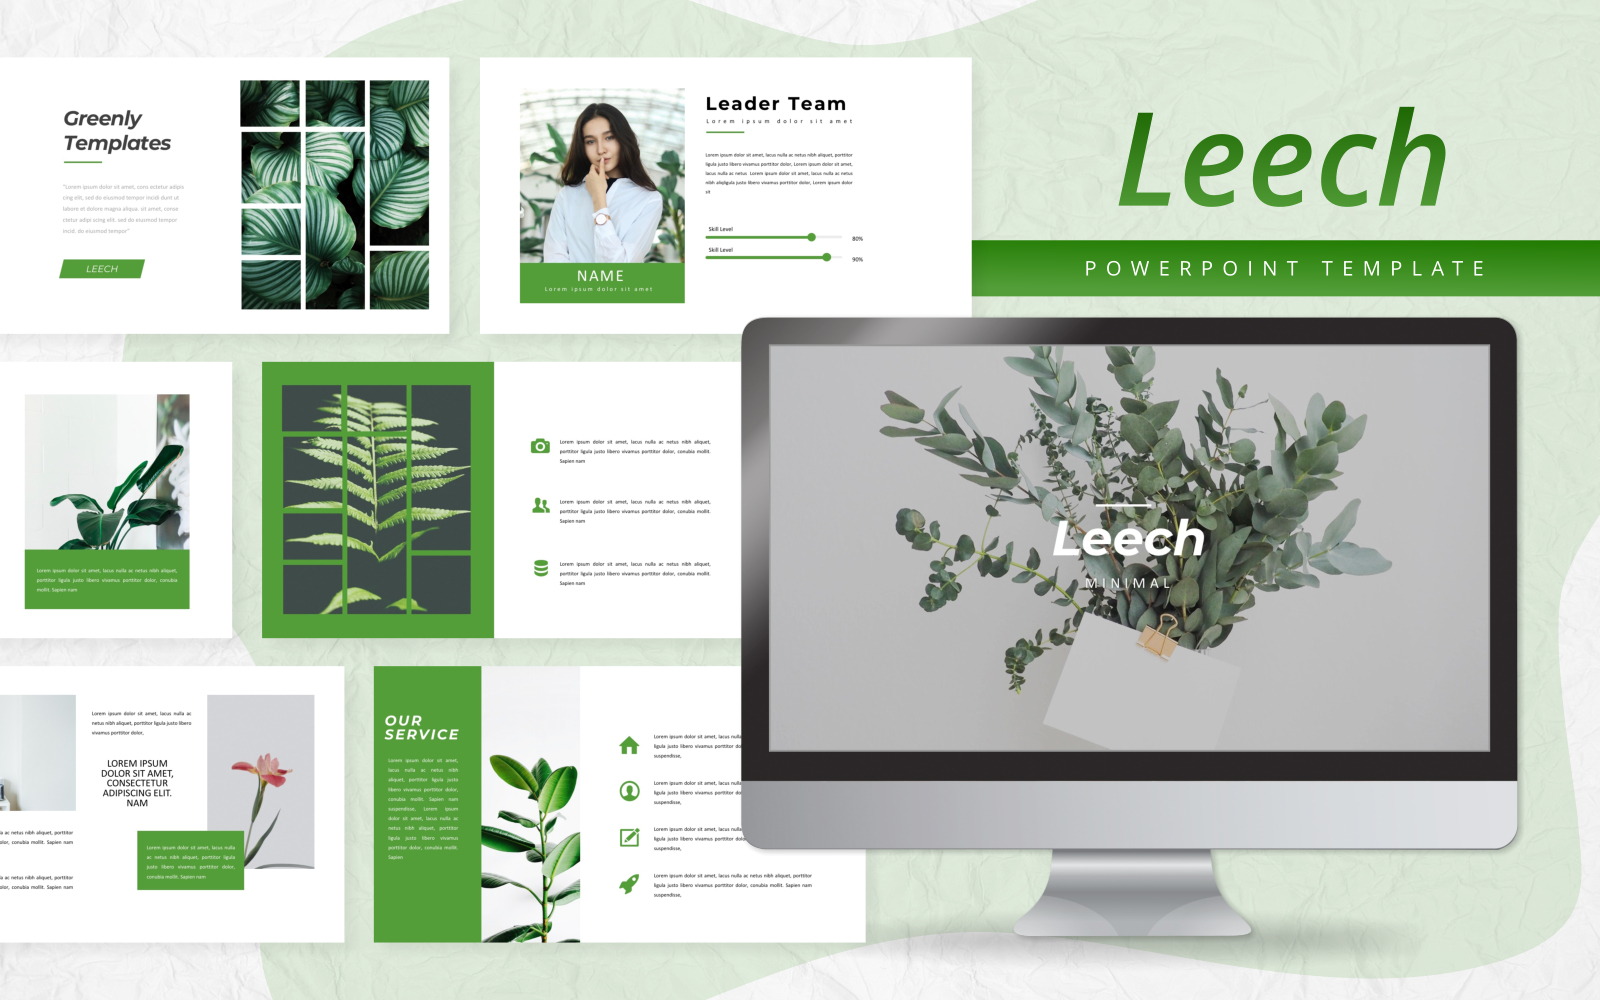 Leech - Creative Presentation PowerPoint Template